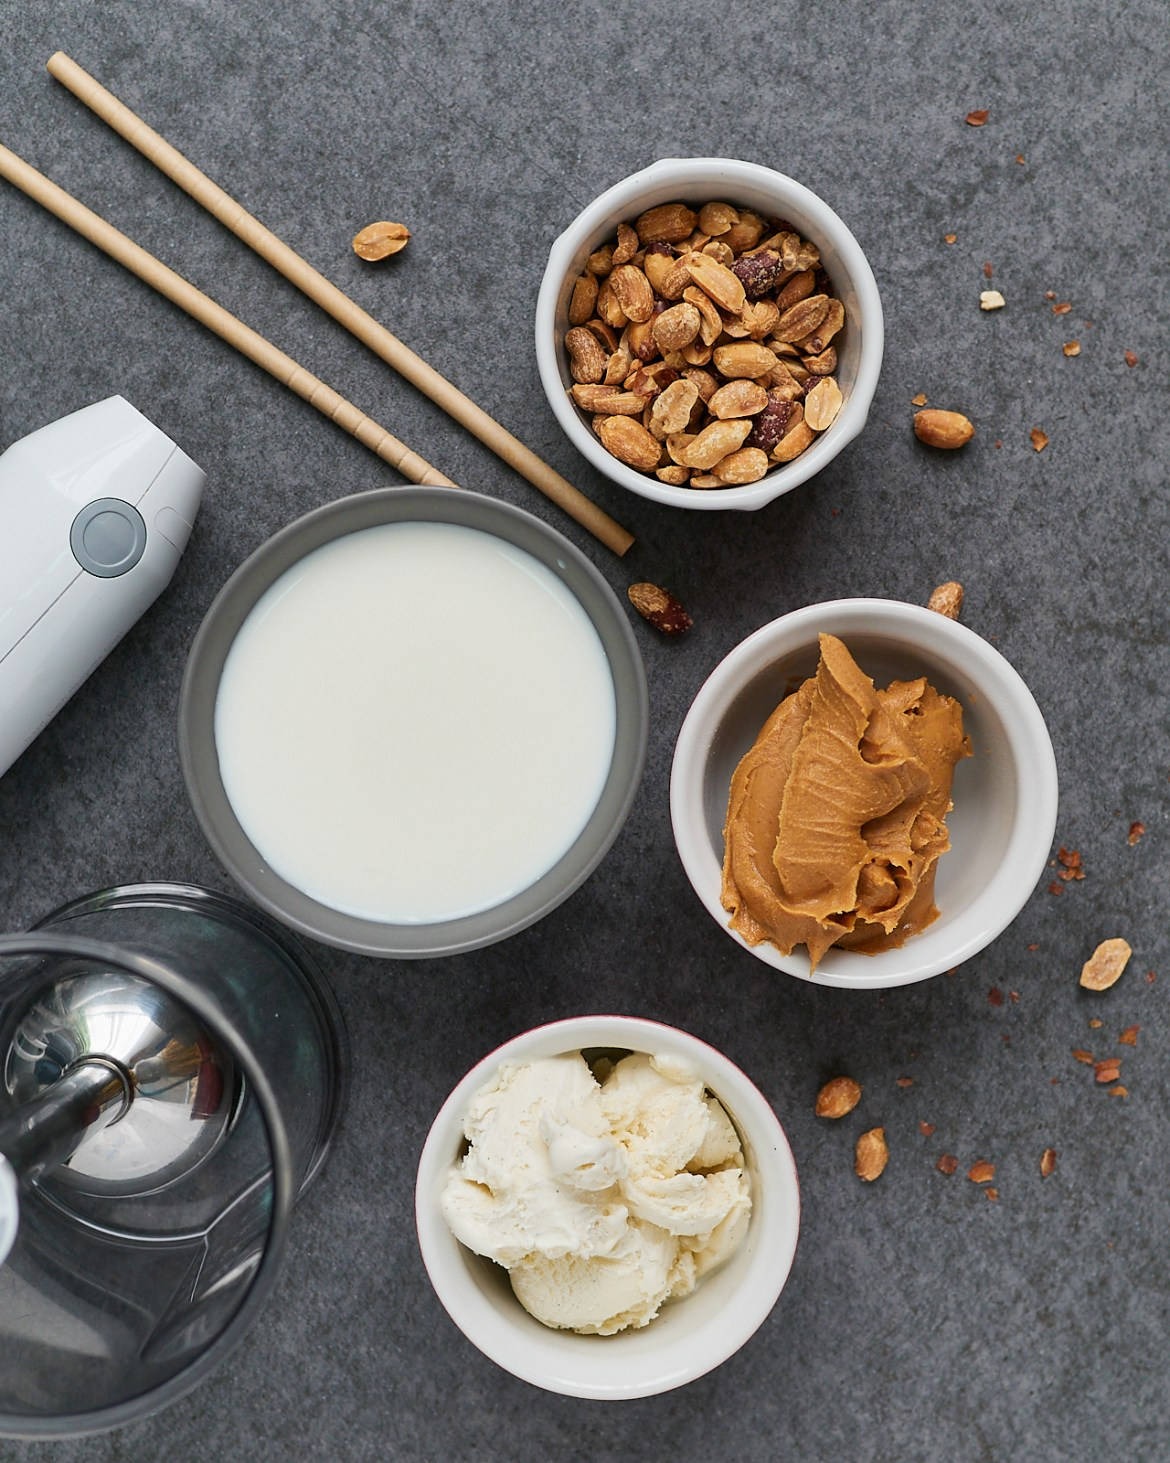 ingredients for peanut butter milkshake